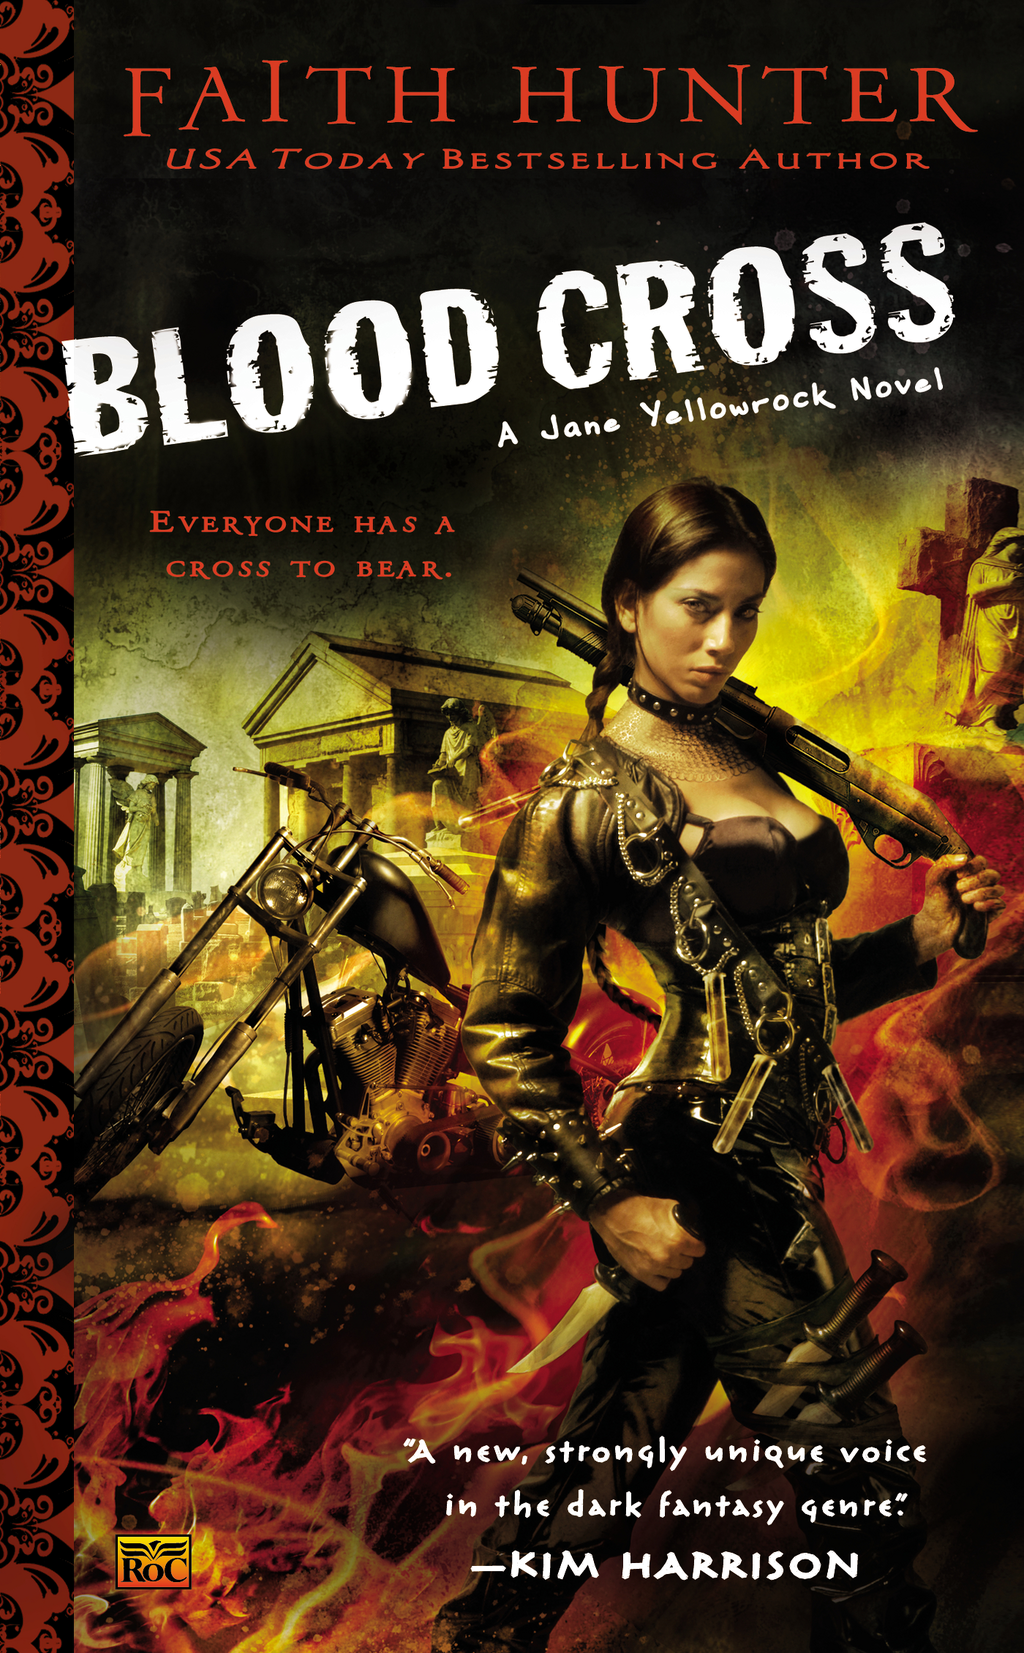 Blood Cross By: Faith Hunter